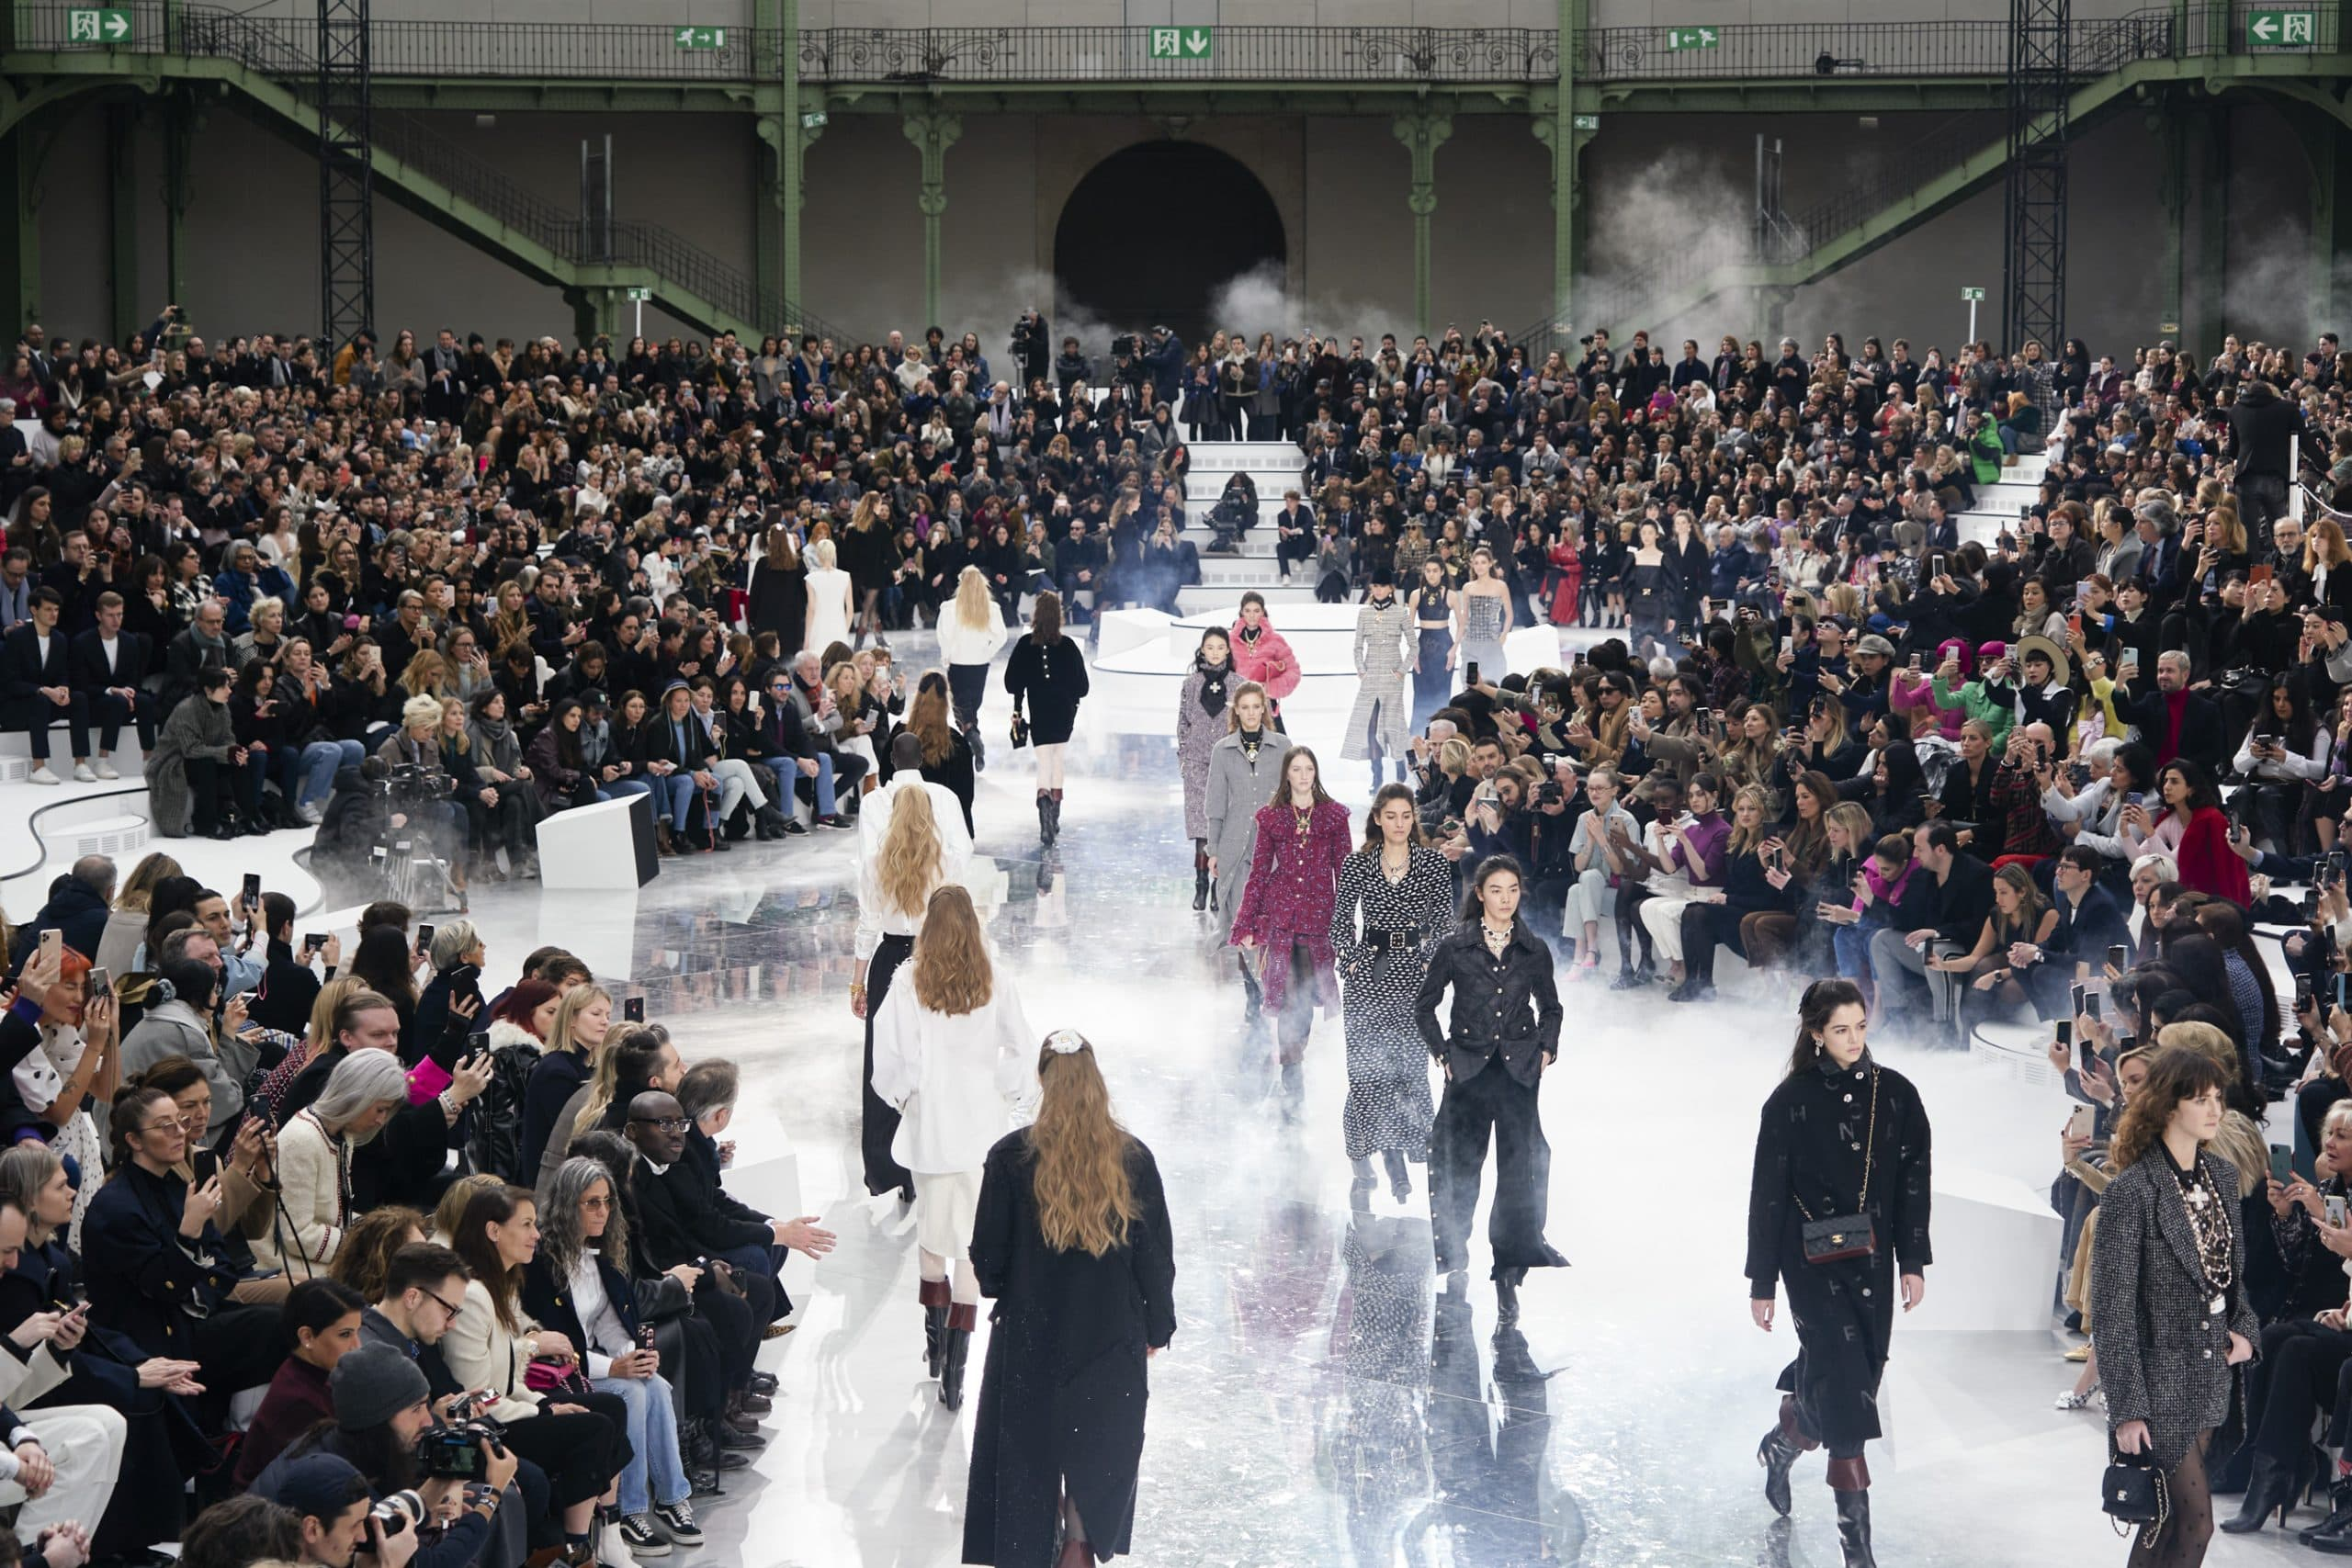 In-Person Fashion Shows Are Coming Back Faster Than Global Immunization